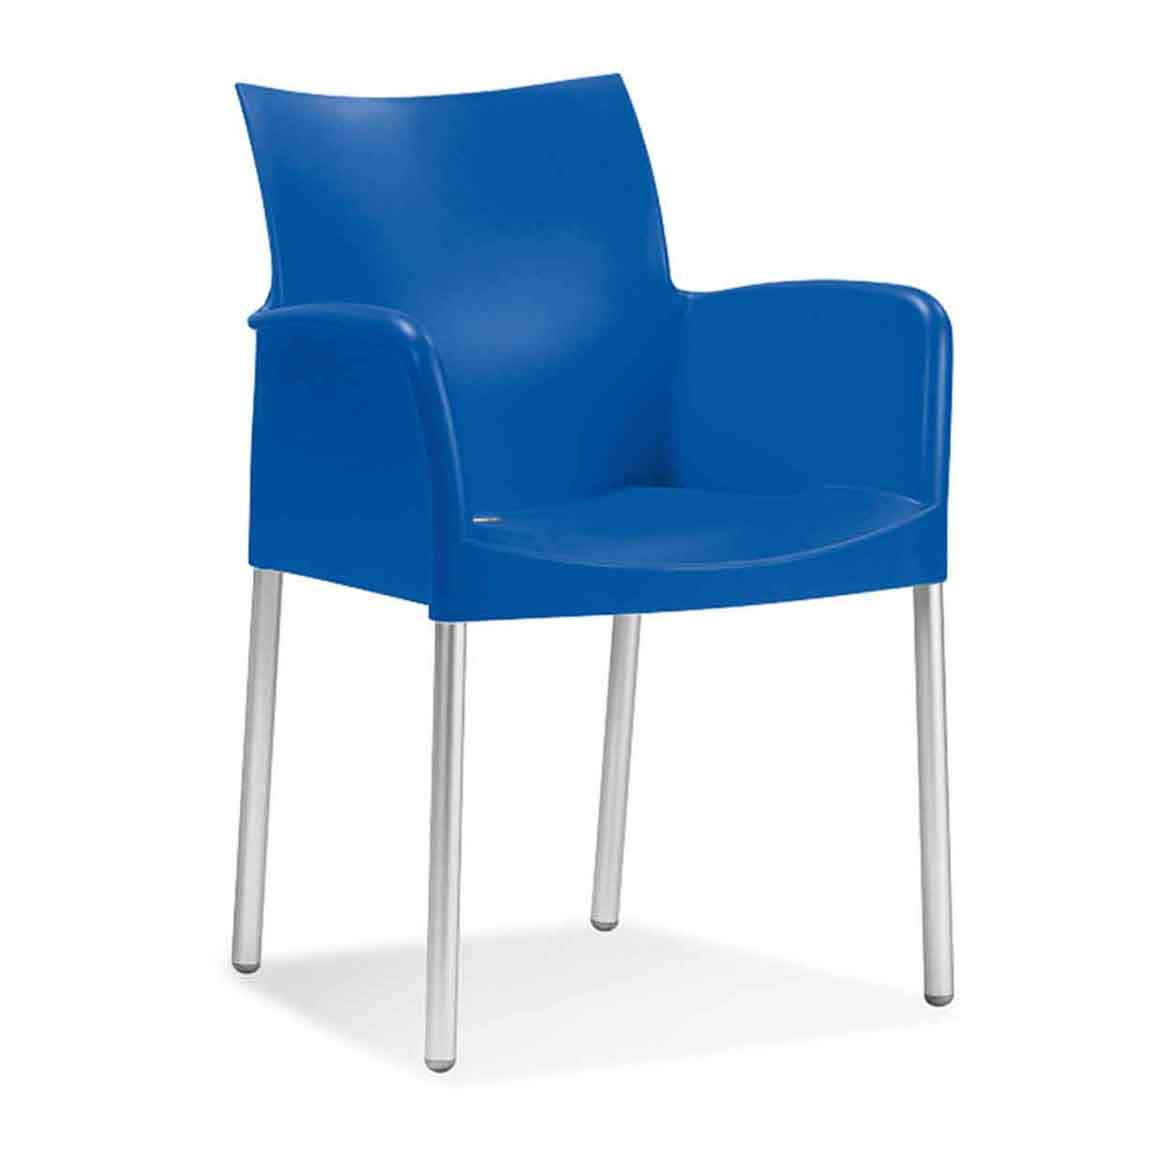 Anodised aluminium legs, suitable for outdoor use. Polypropylene shell, available in 7 colours.